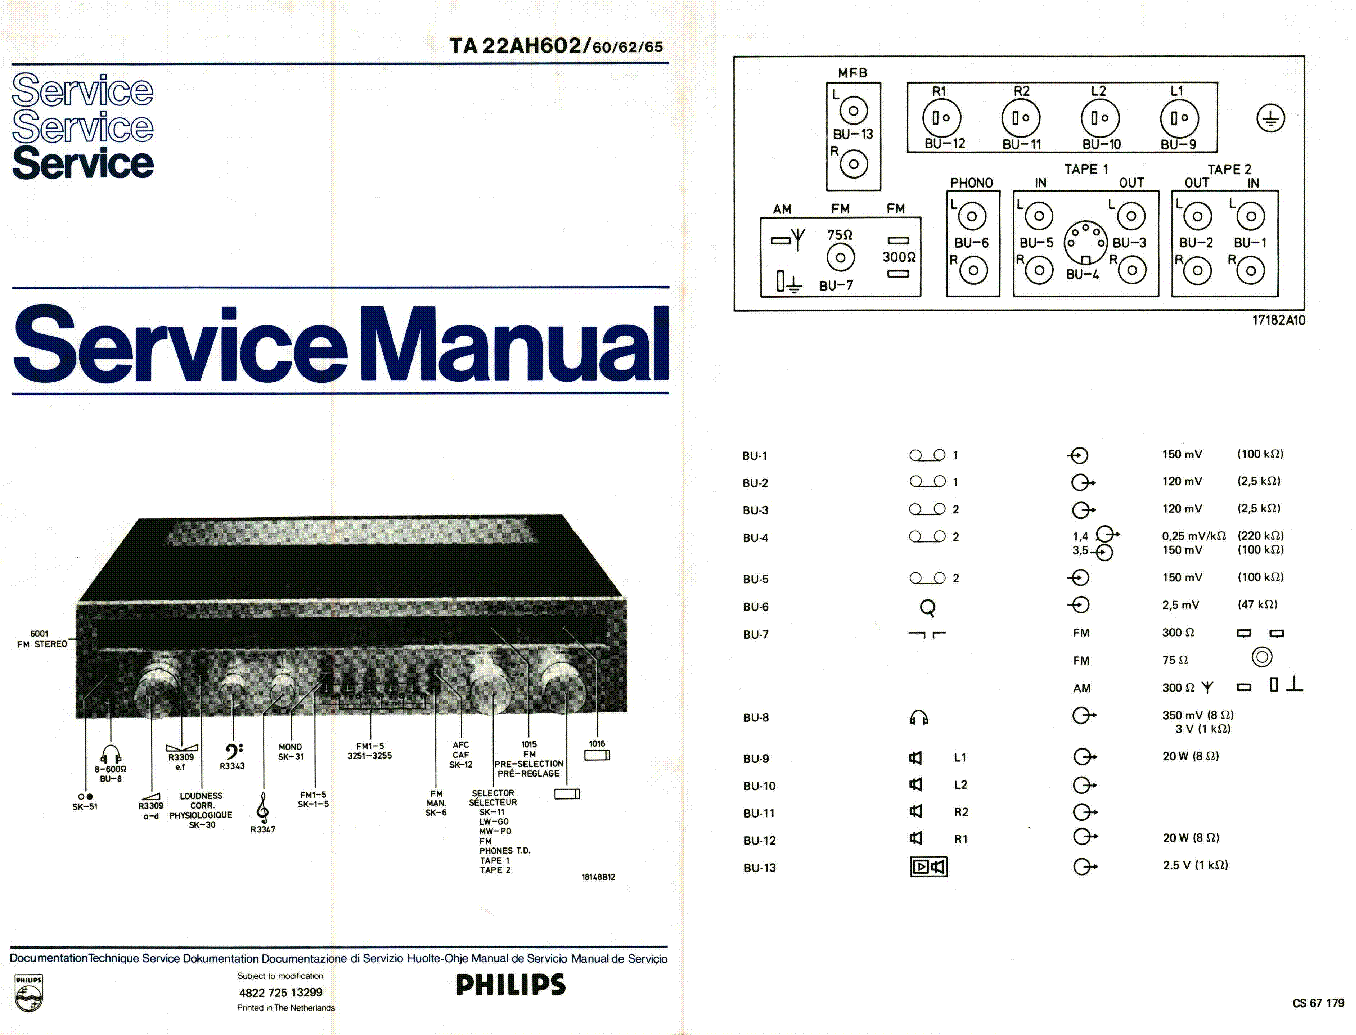 philips mcm704d service manual free download  schematics